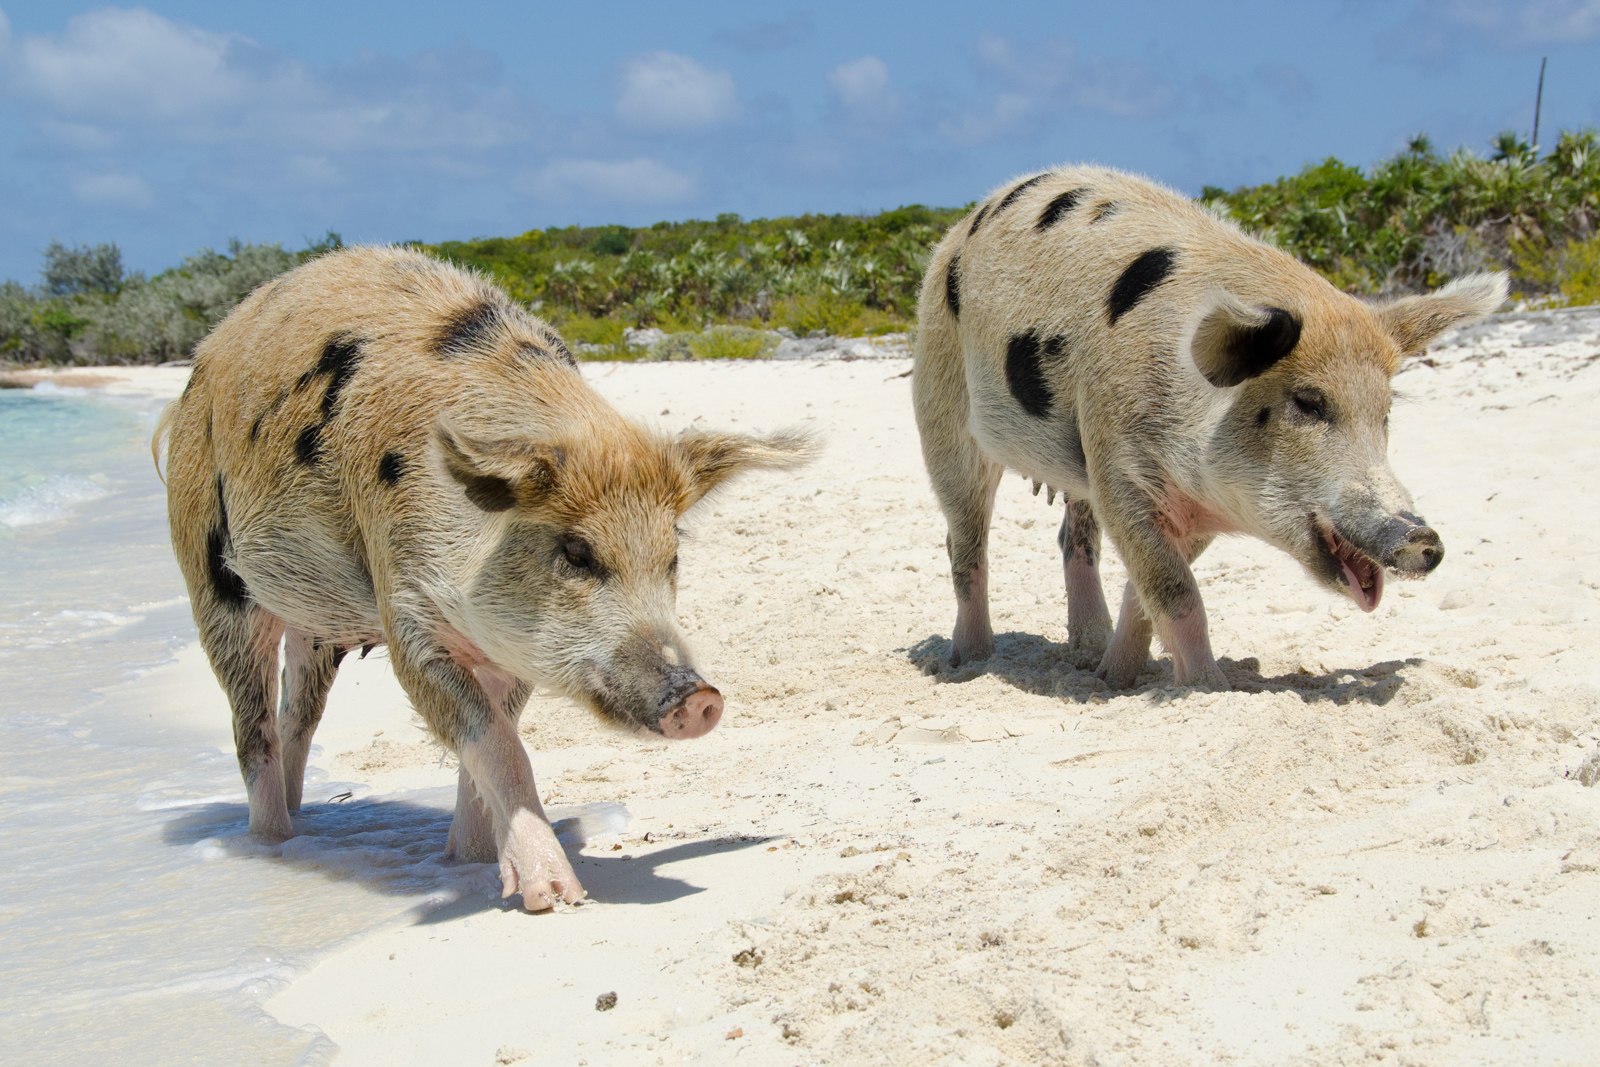 Wild pigs on Big Major's Cay in Pig Beach Bahamas. One of the best Florida Beaches and best places to go in Florida. The beach has some of the best resorts in Florida on the best beaches in Florida. This photo a part of top 10 Beaches in Florida brought to you by Flying and Travel which presents all the nice beaches in Florida and best Florida vacation spots.